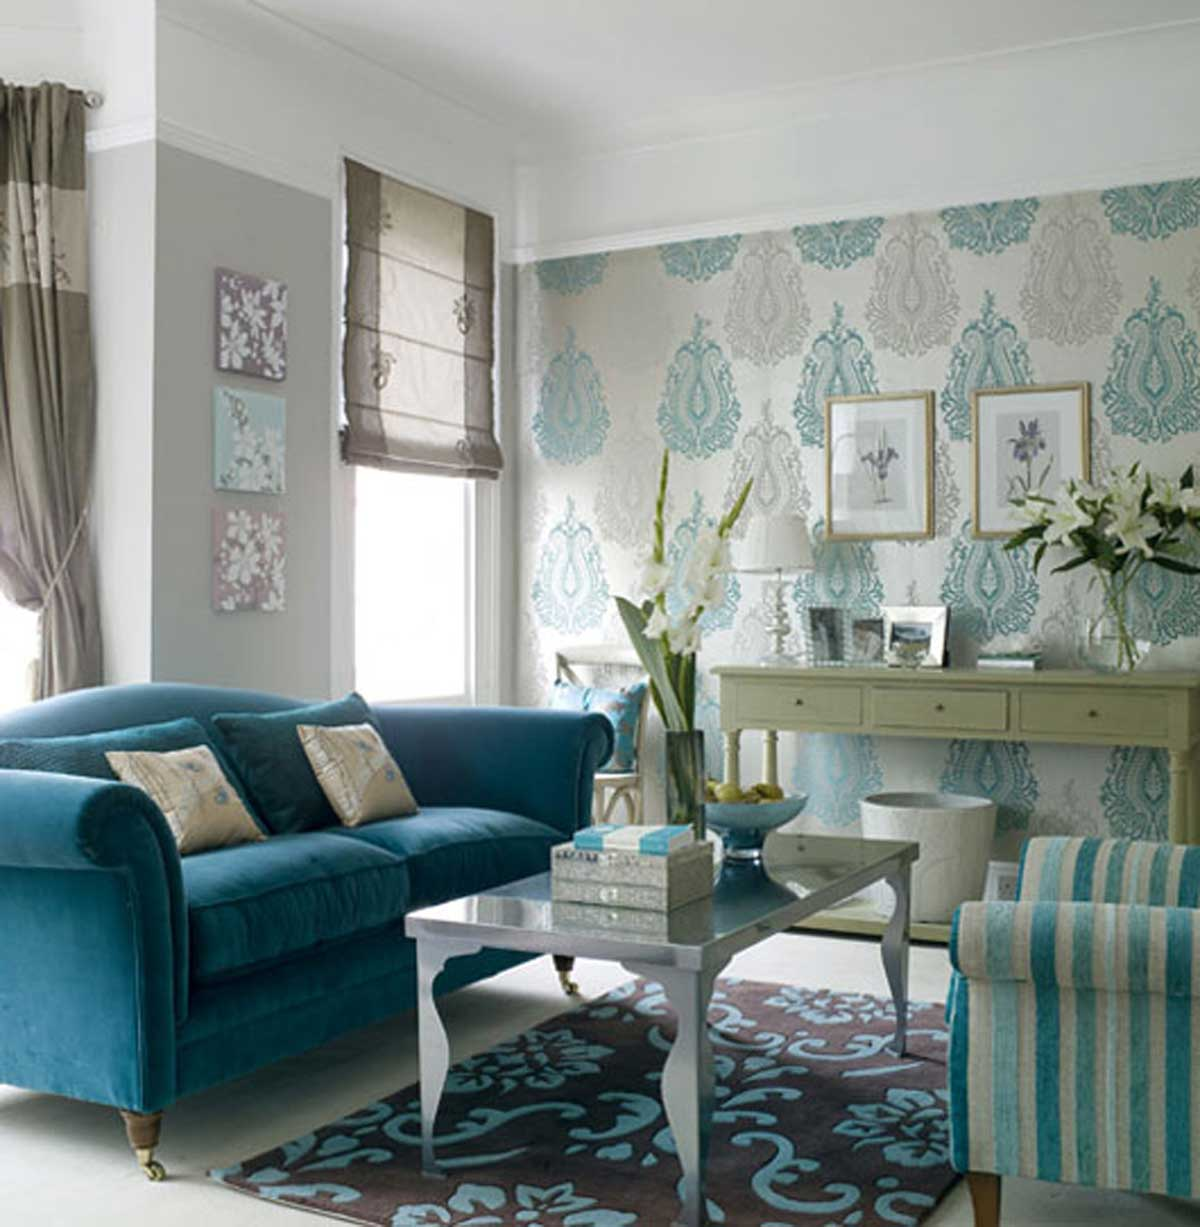 Wallpaper Room Ideas photo - 10